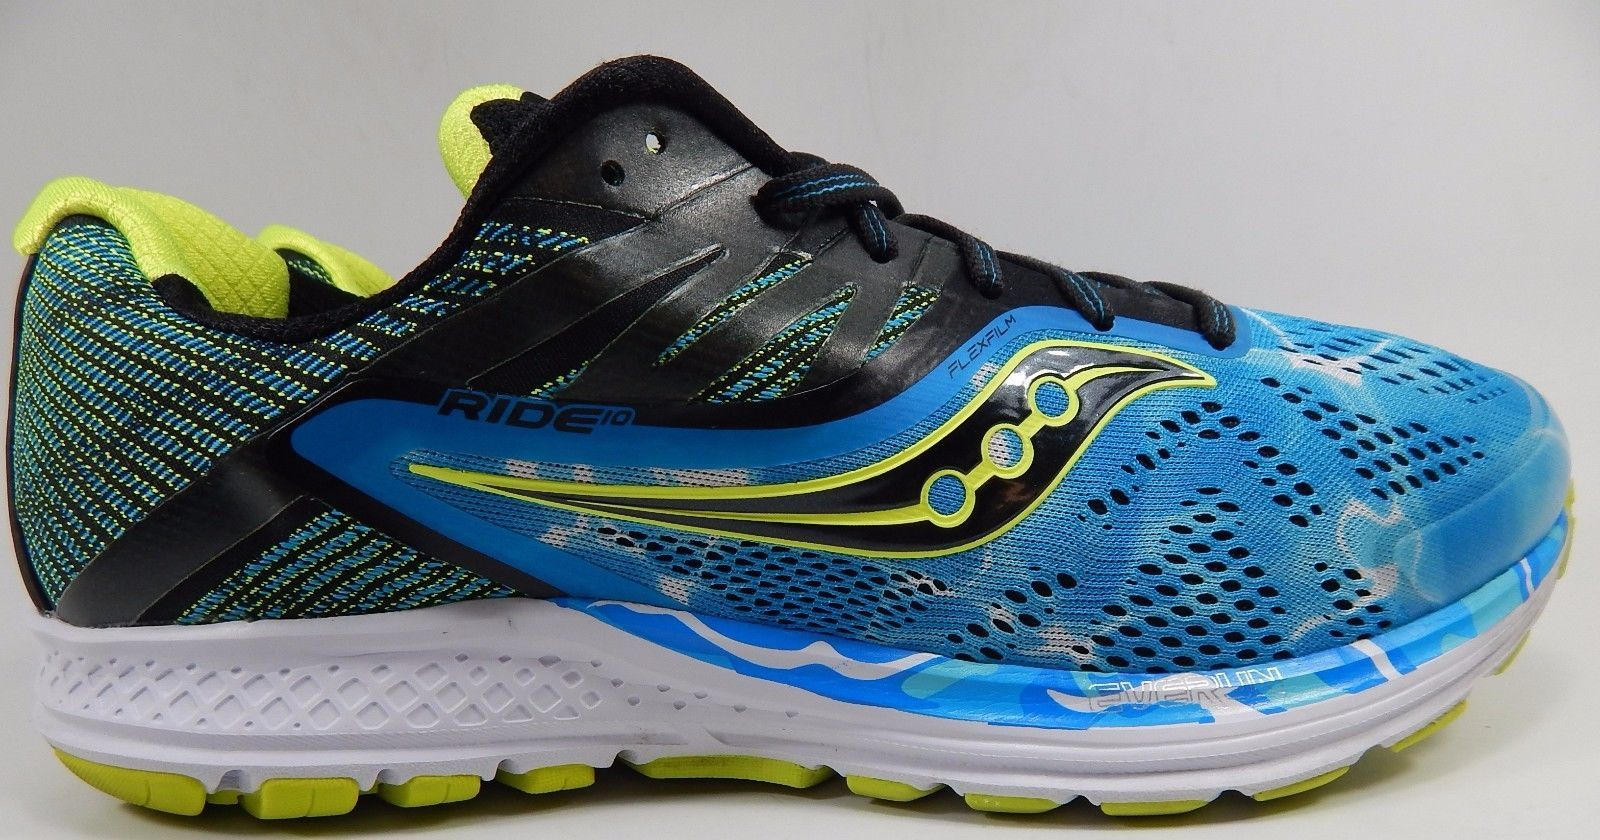 Saucony Ride 10 Endless Summer Ocean Wave Men's Shoes Size US 10 M (D) EU 44